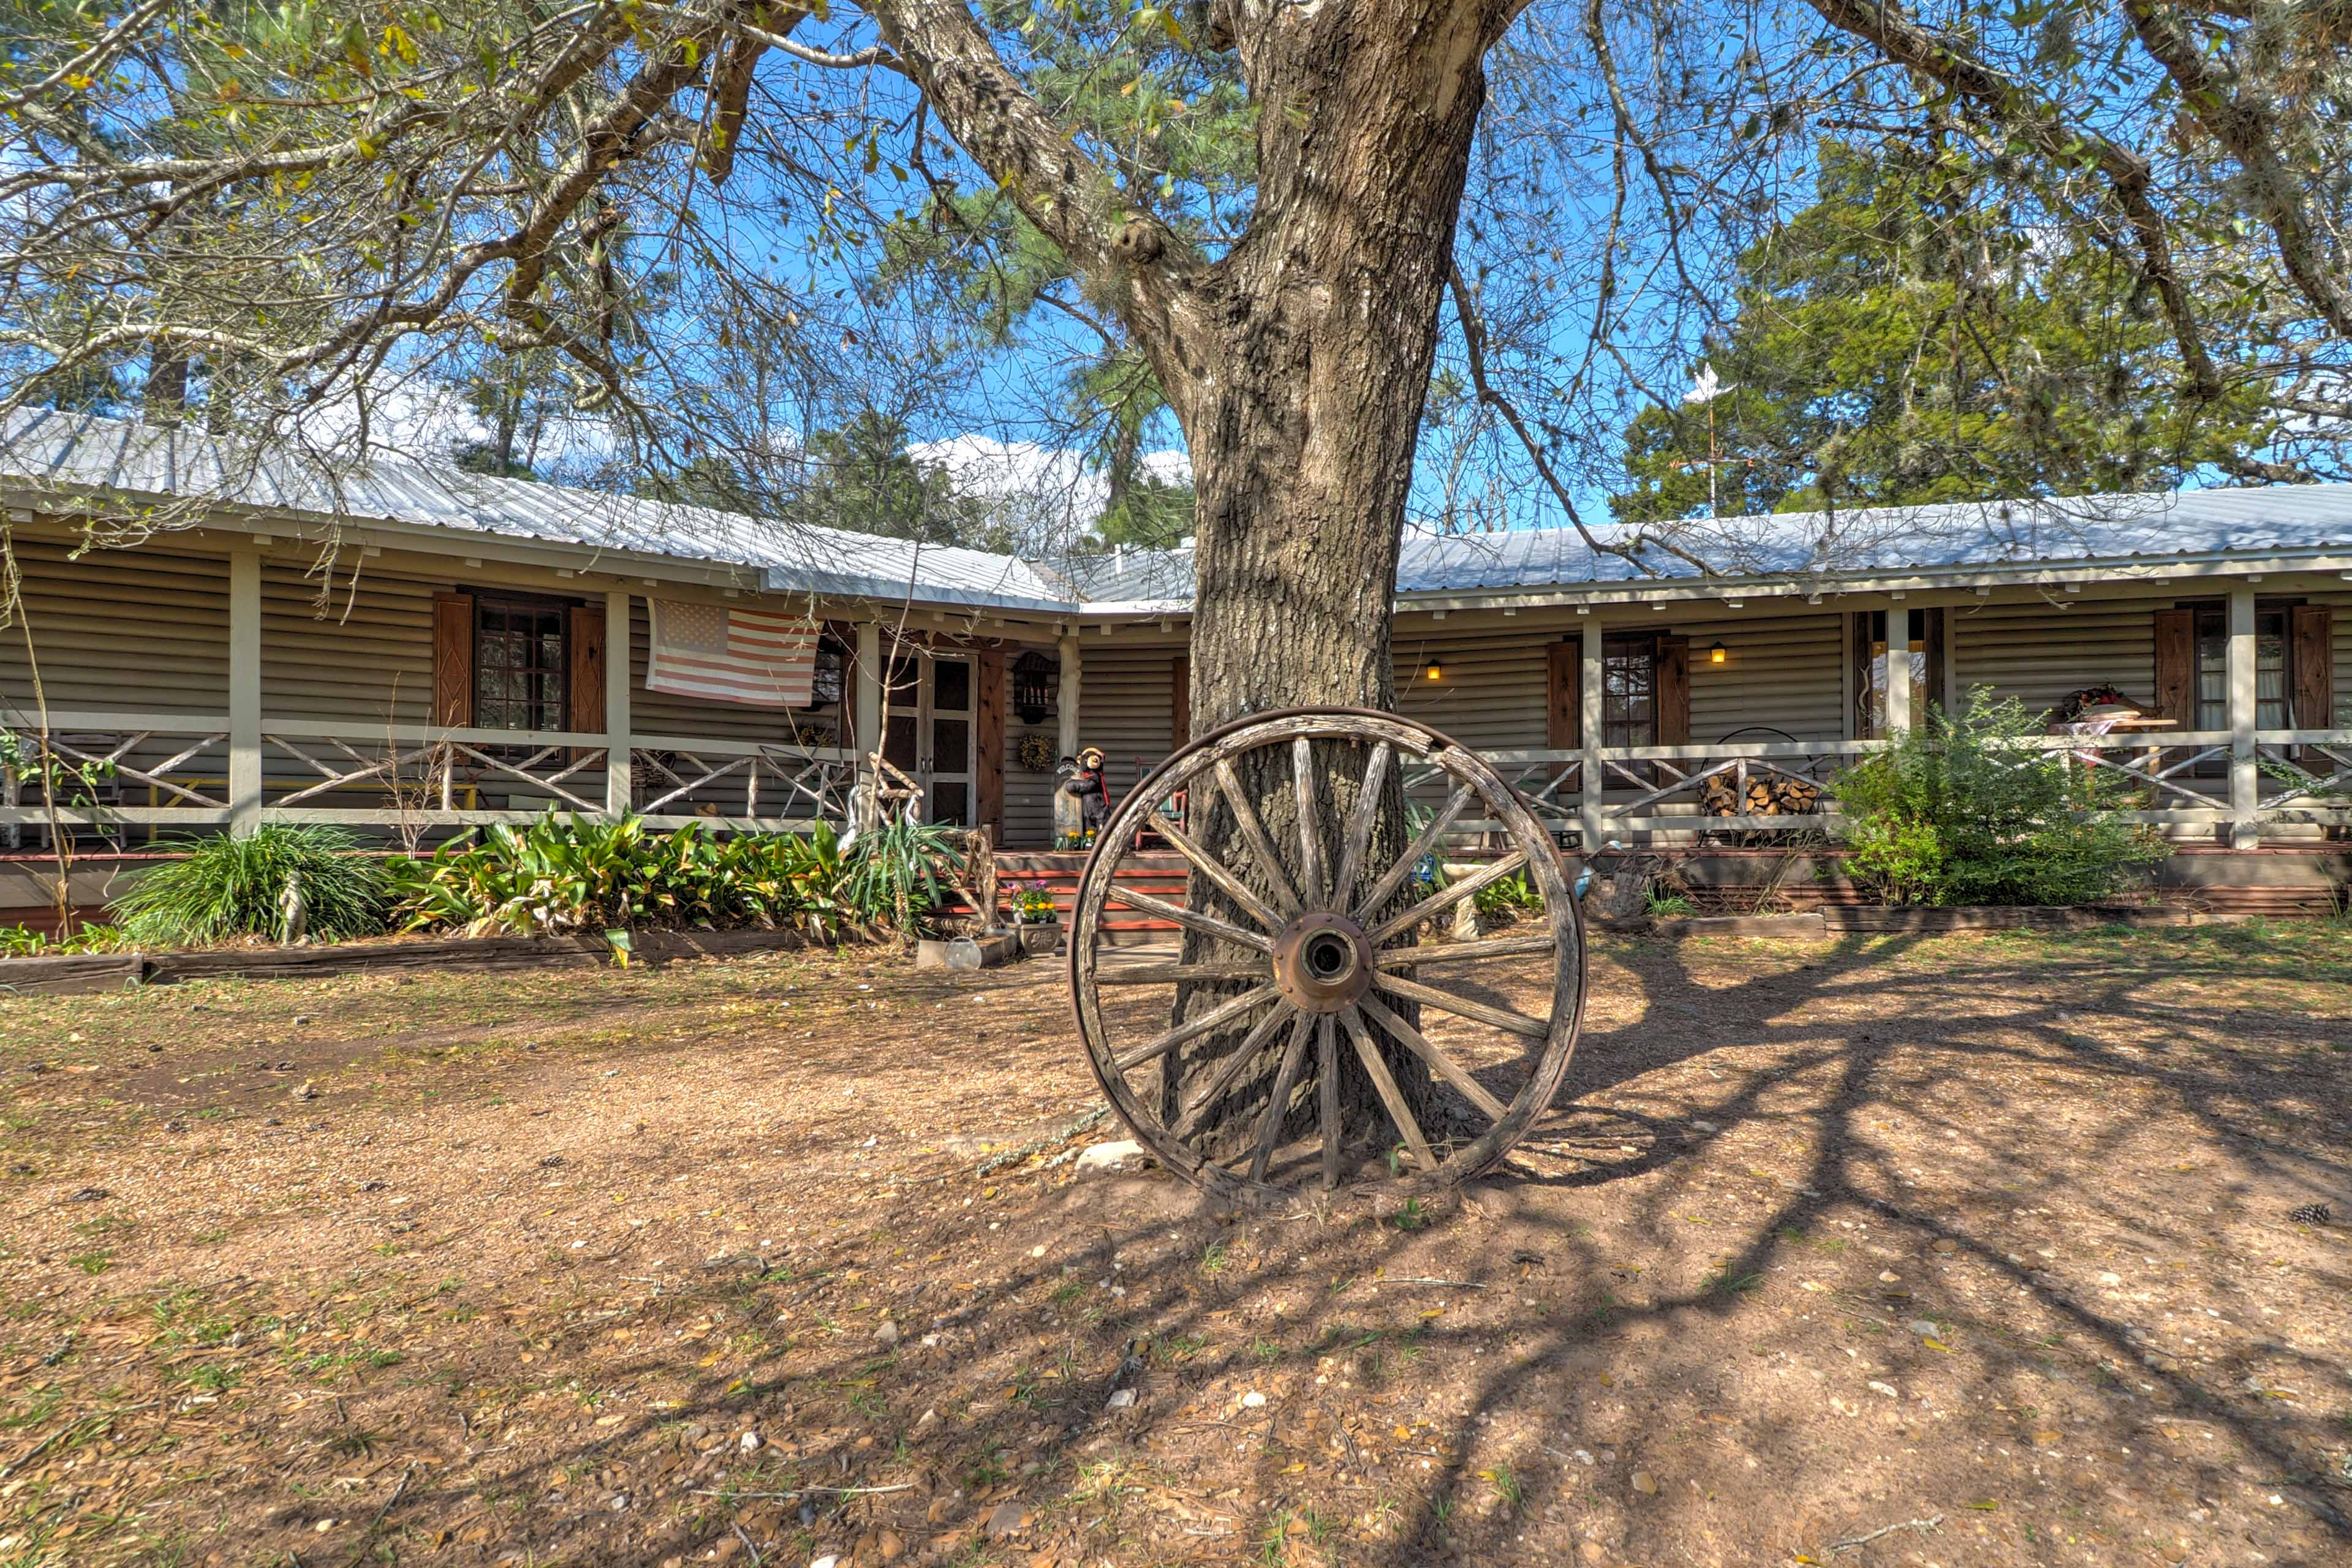 The Lodge is a place for retreats, workshops, and any other fellowship events..